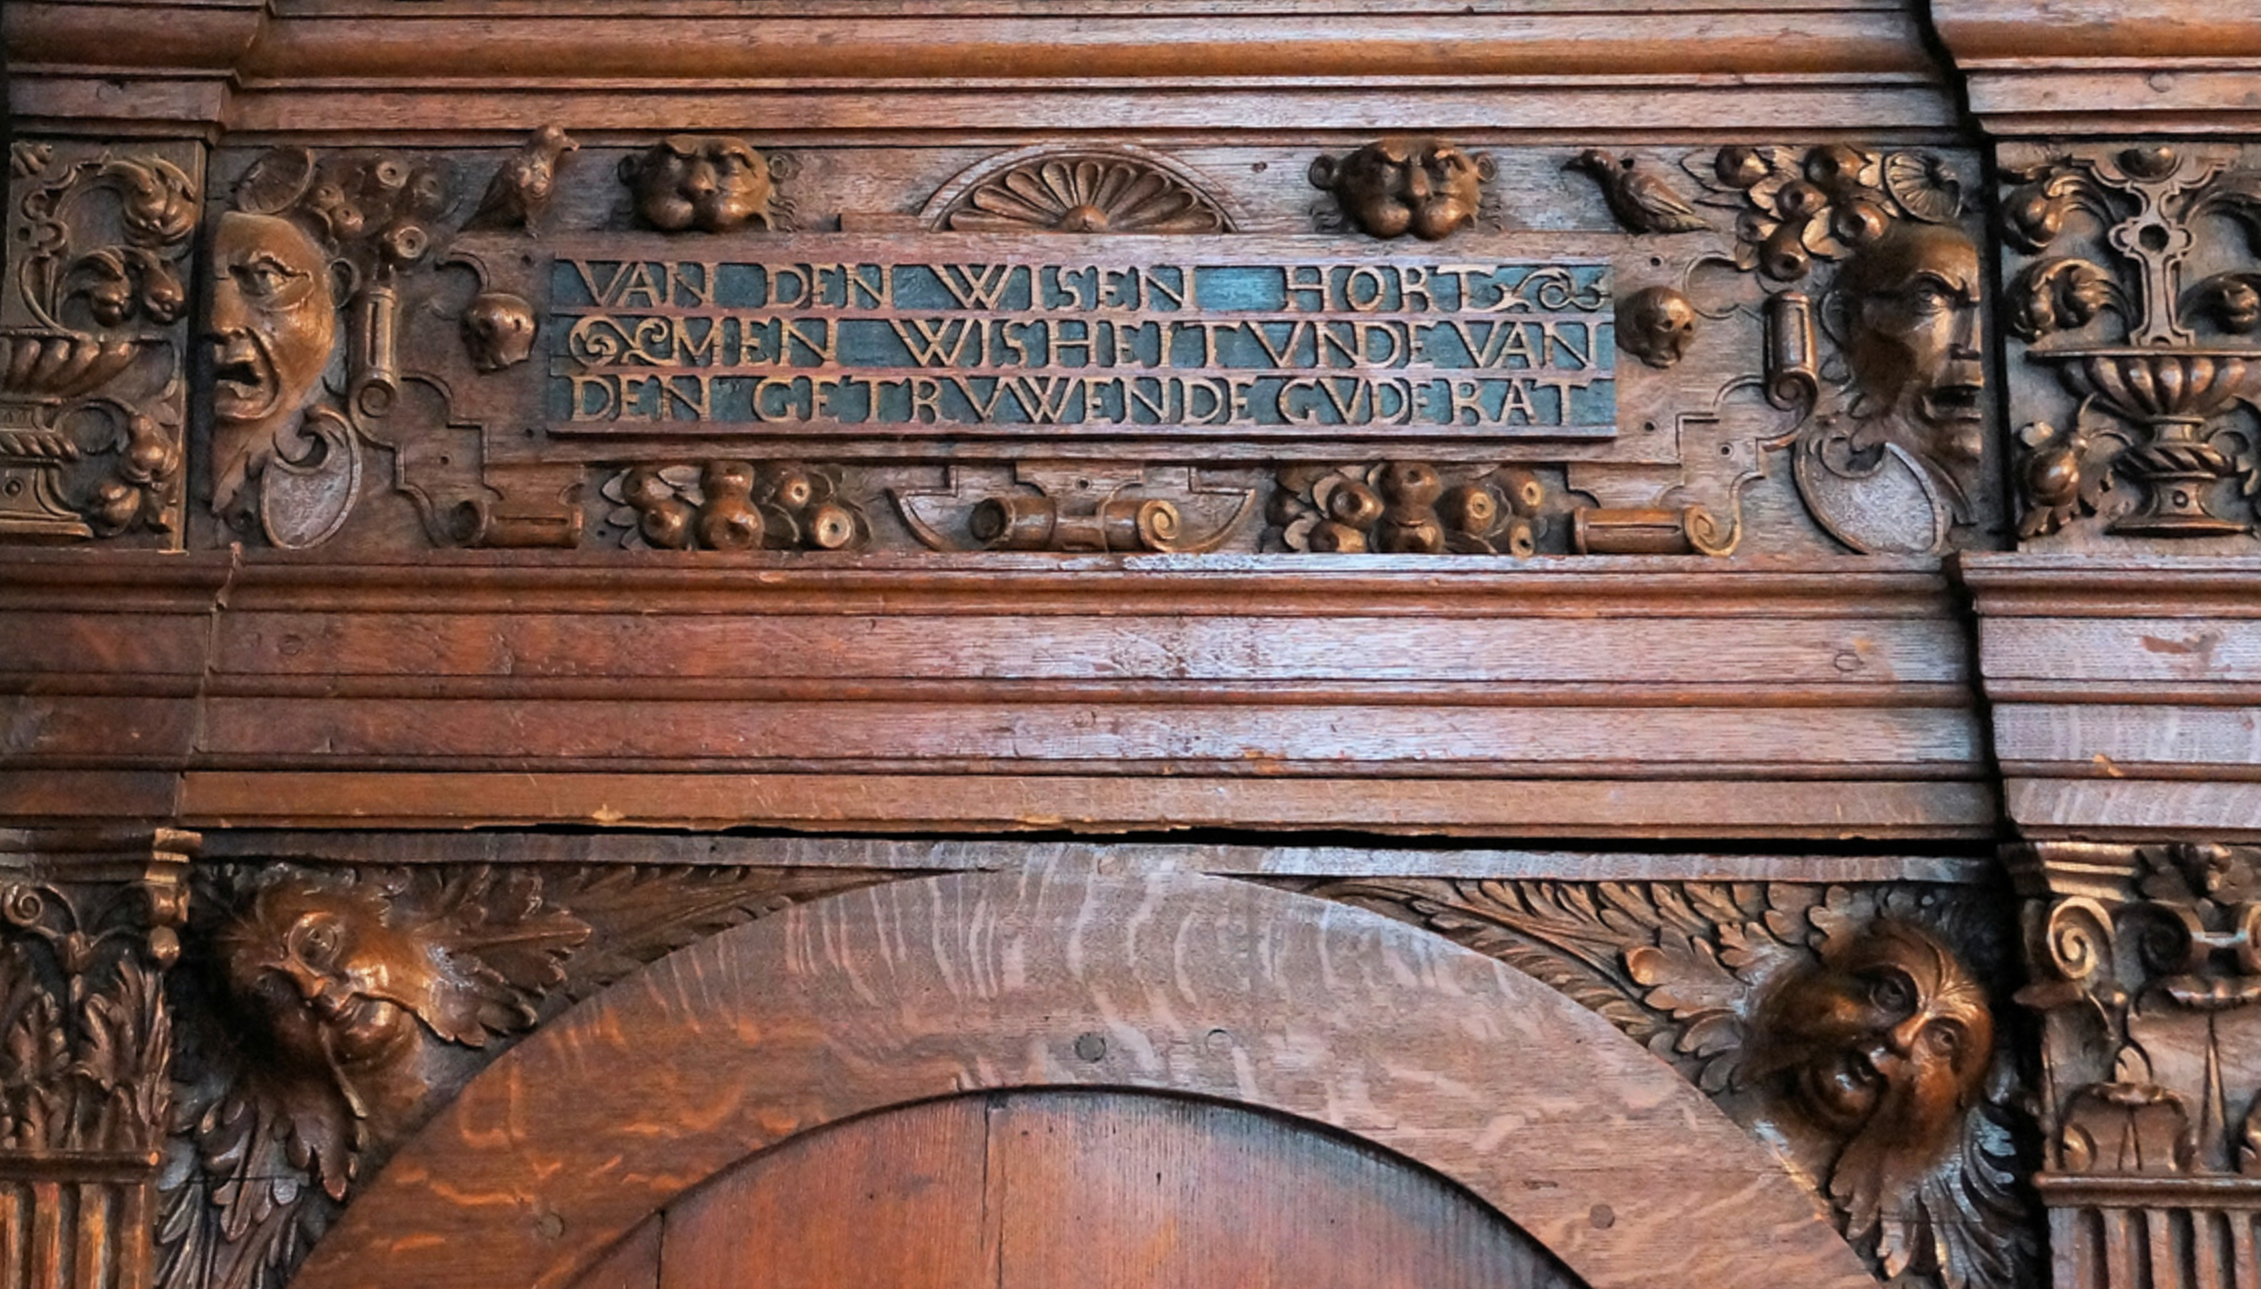 """Inscription above the left door: """"Fromthe wise, one hears wisdom and from the loyal, good advice"""" (thanks to Volker Langbehn for the translation)"""